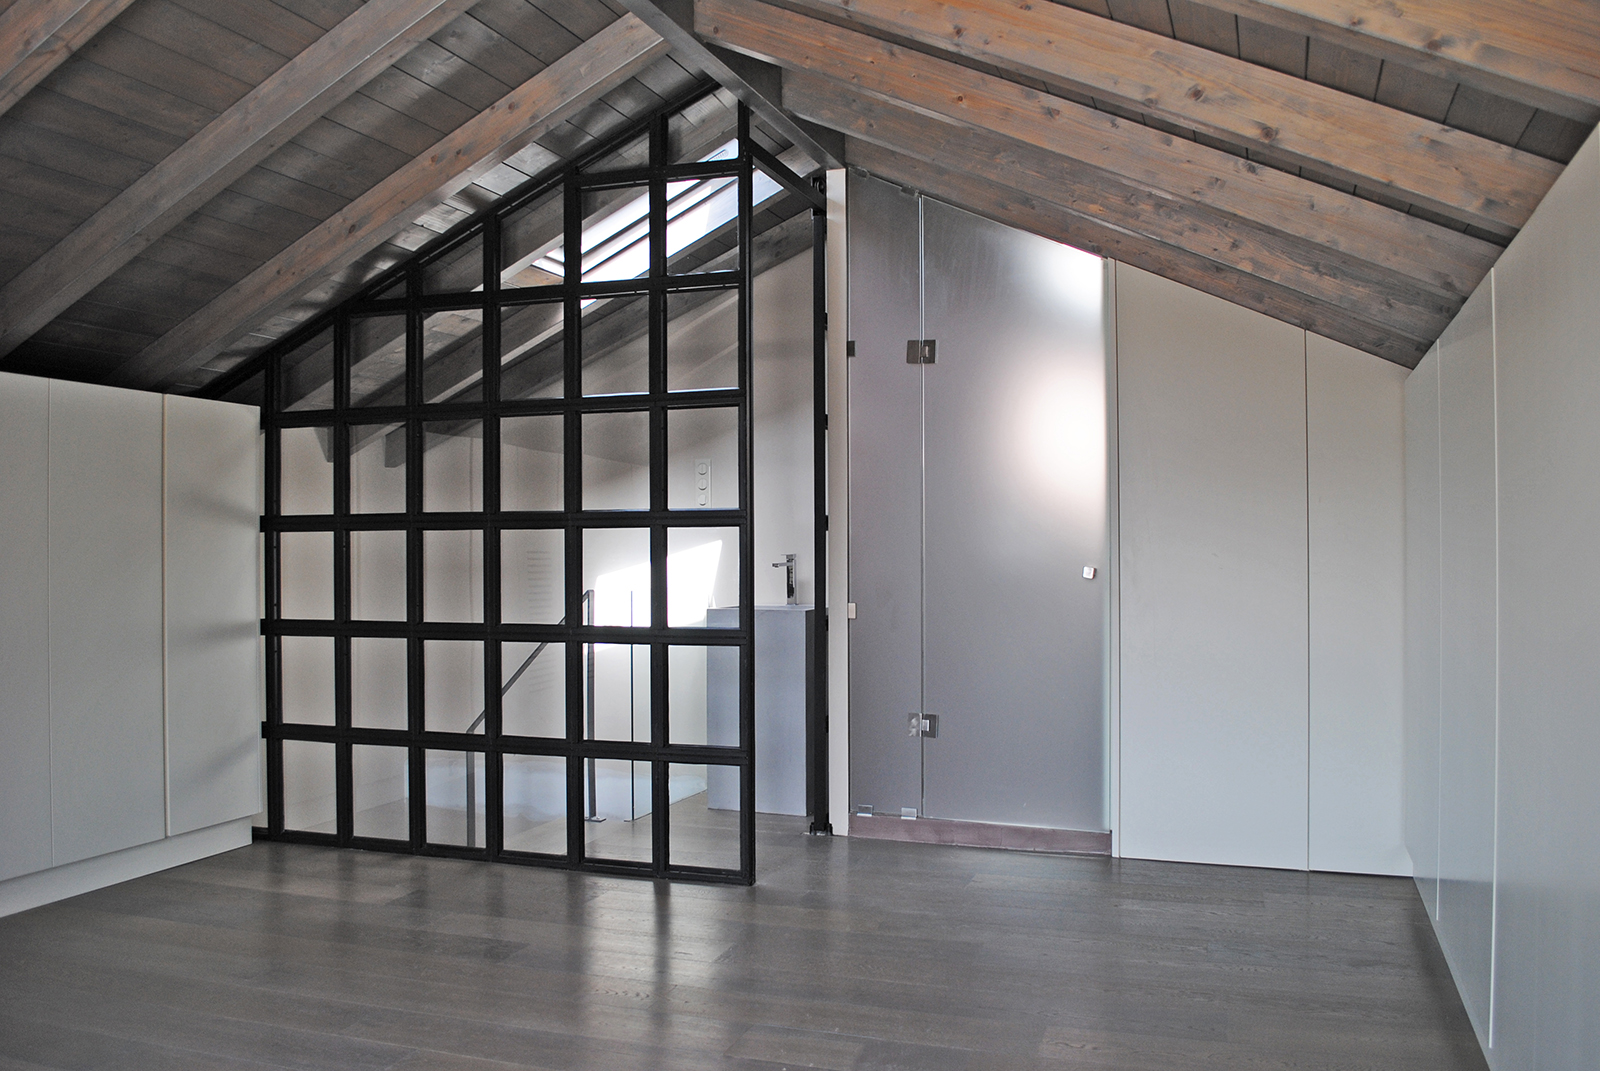 Master bedroom in the attic